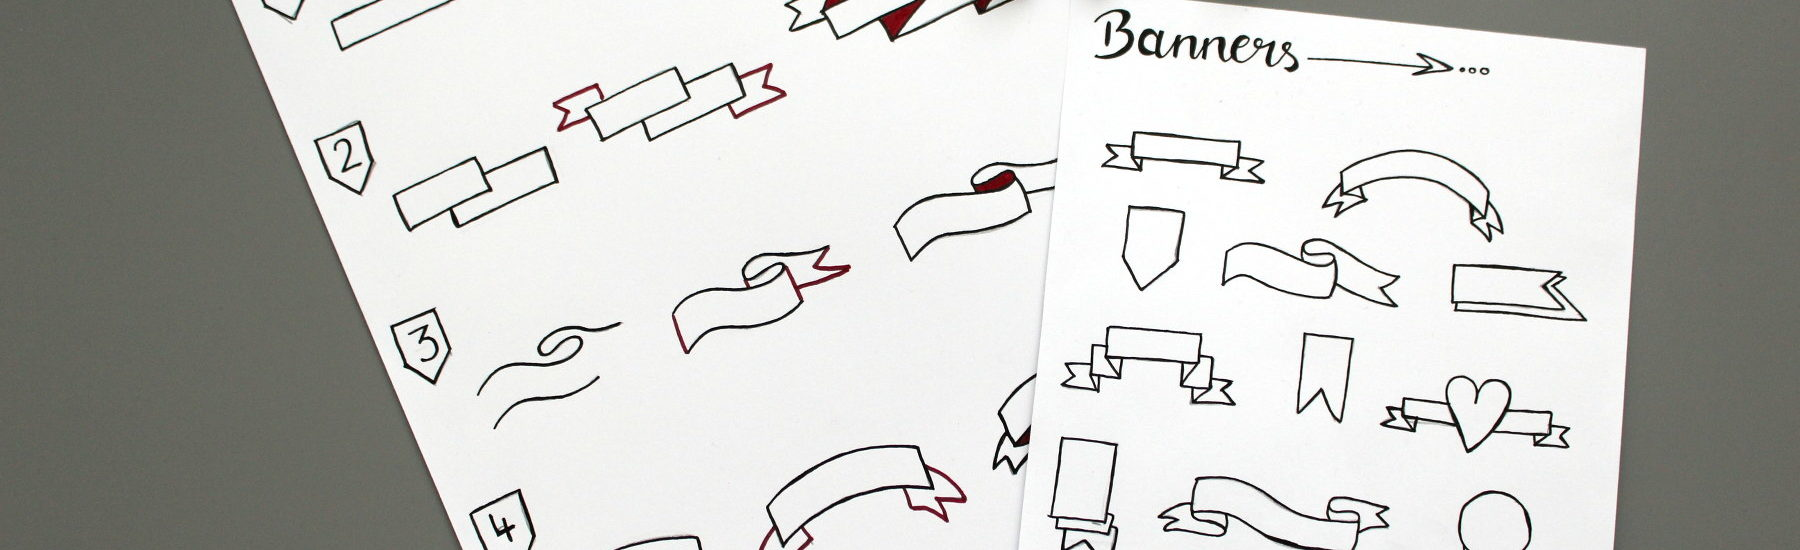 How To Make Banners